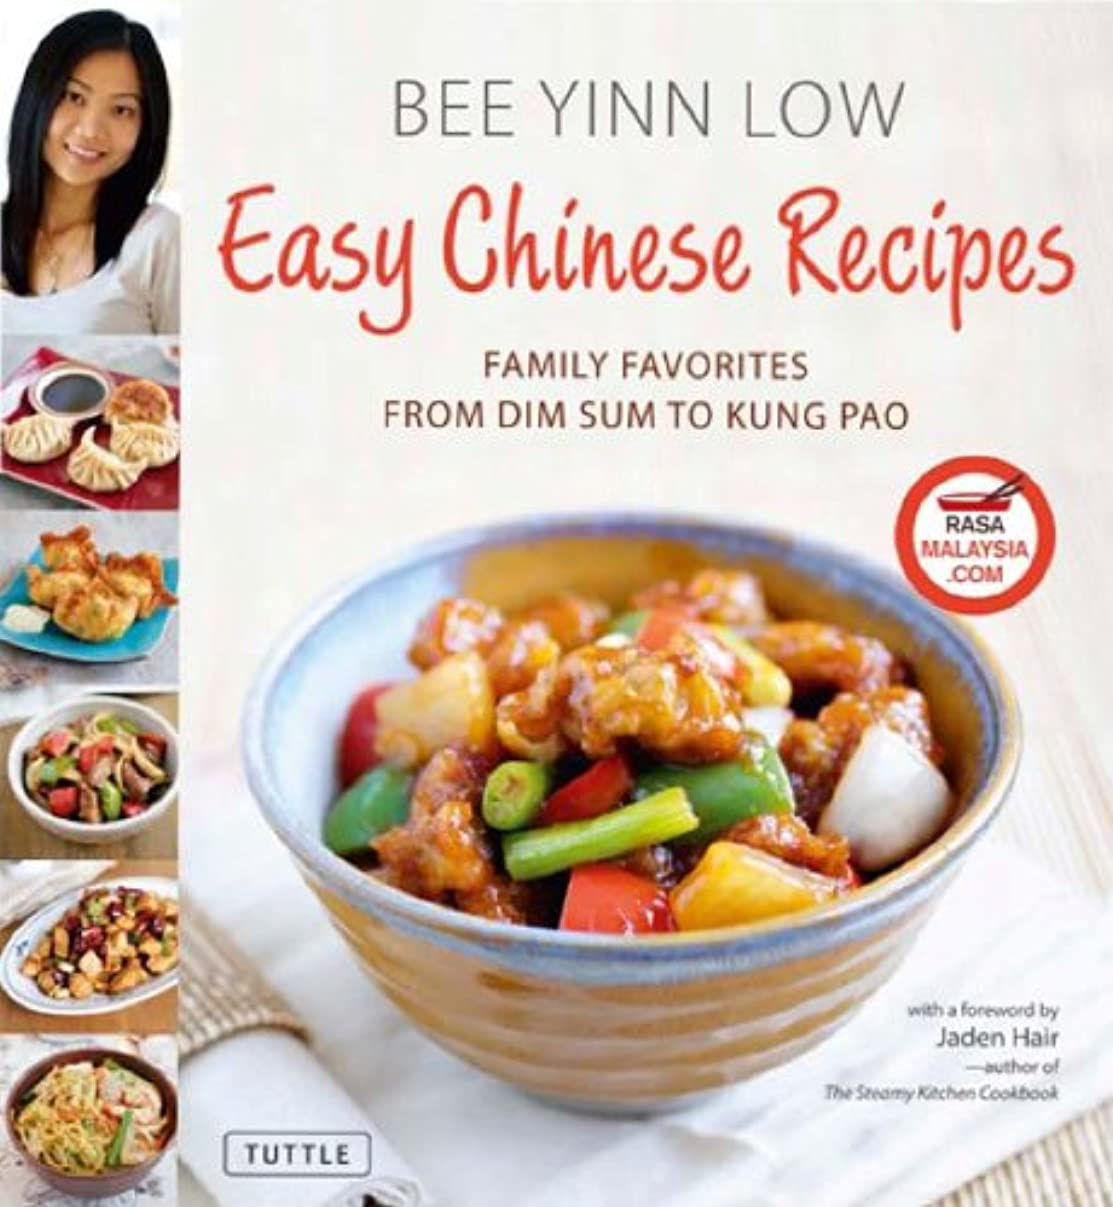 プランター砦ケープEasy Chinese Recipes: Family Favorites From Dim Sum to Kung Pao (English Edition)